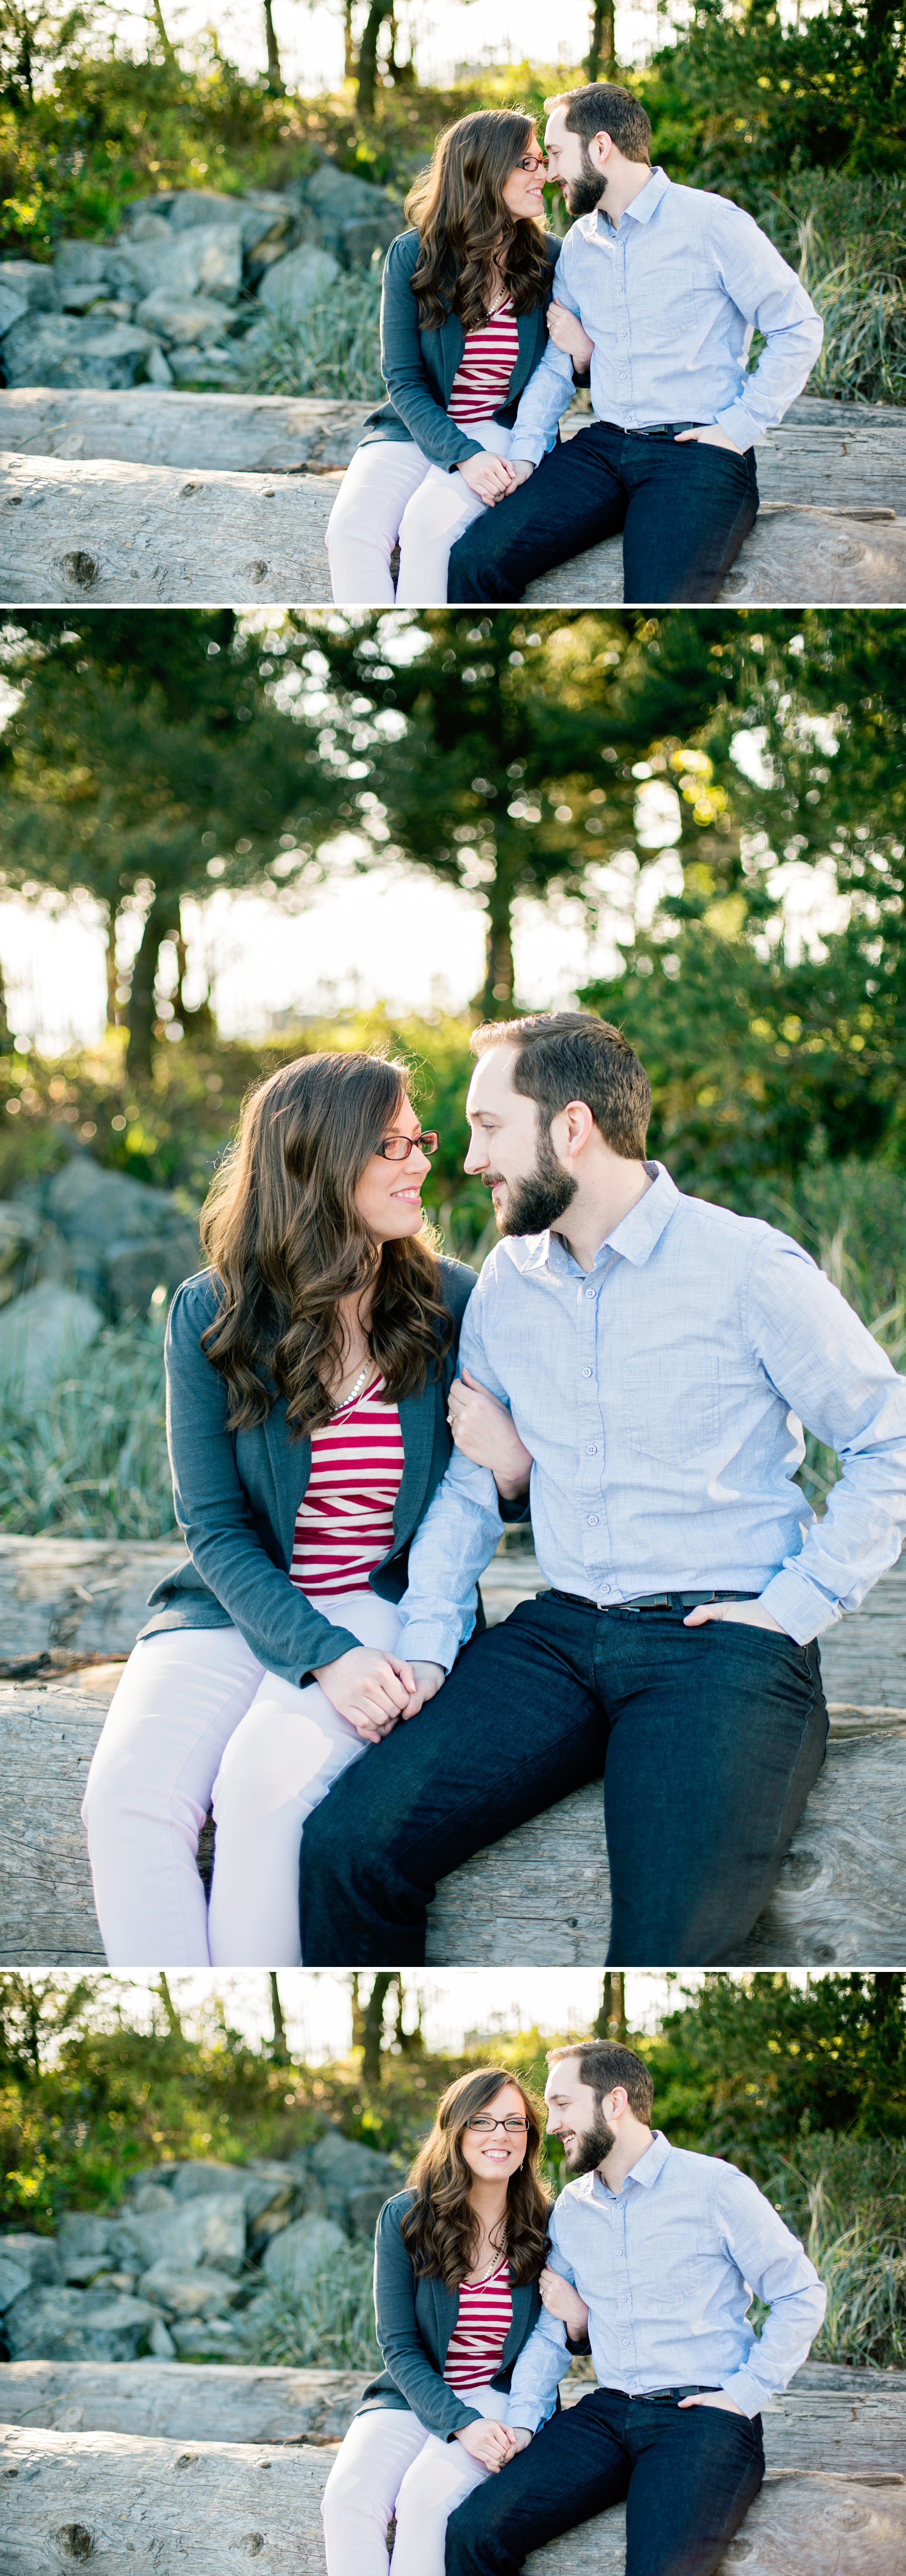 1-Melinda-Tom-Engaged-Seattle-Waterfront-Myrtle-Edwards-Park-Driftwood-Woodland-Beach-Enagement-Photographer-Wedding-Photography-by-Betty-Elaine